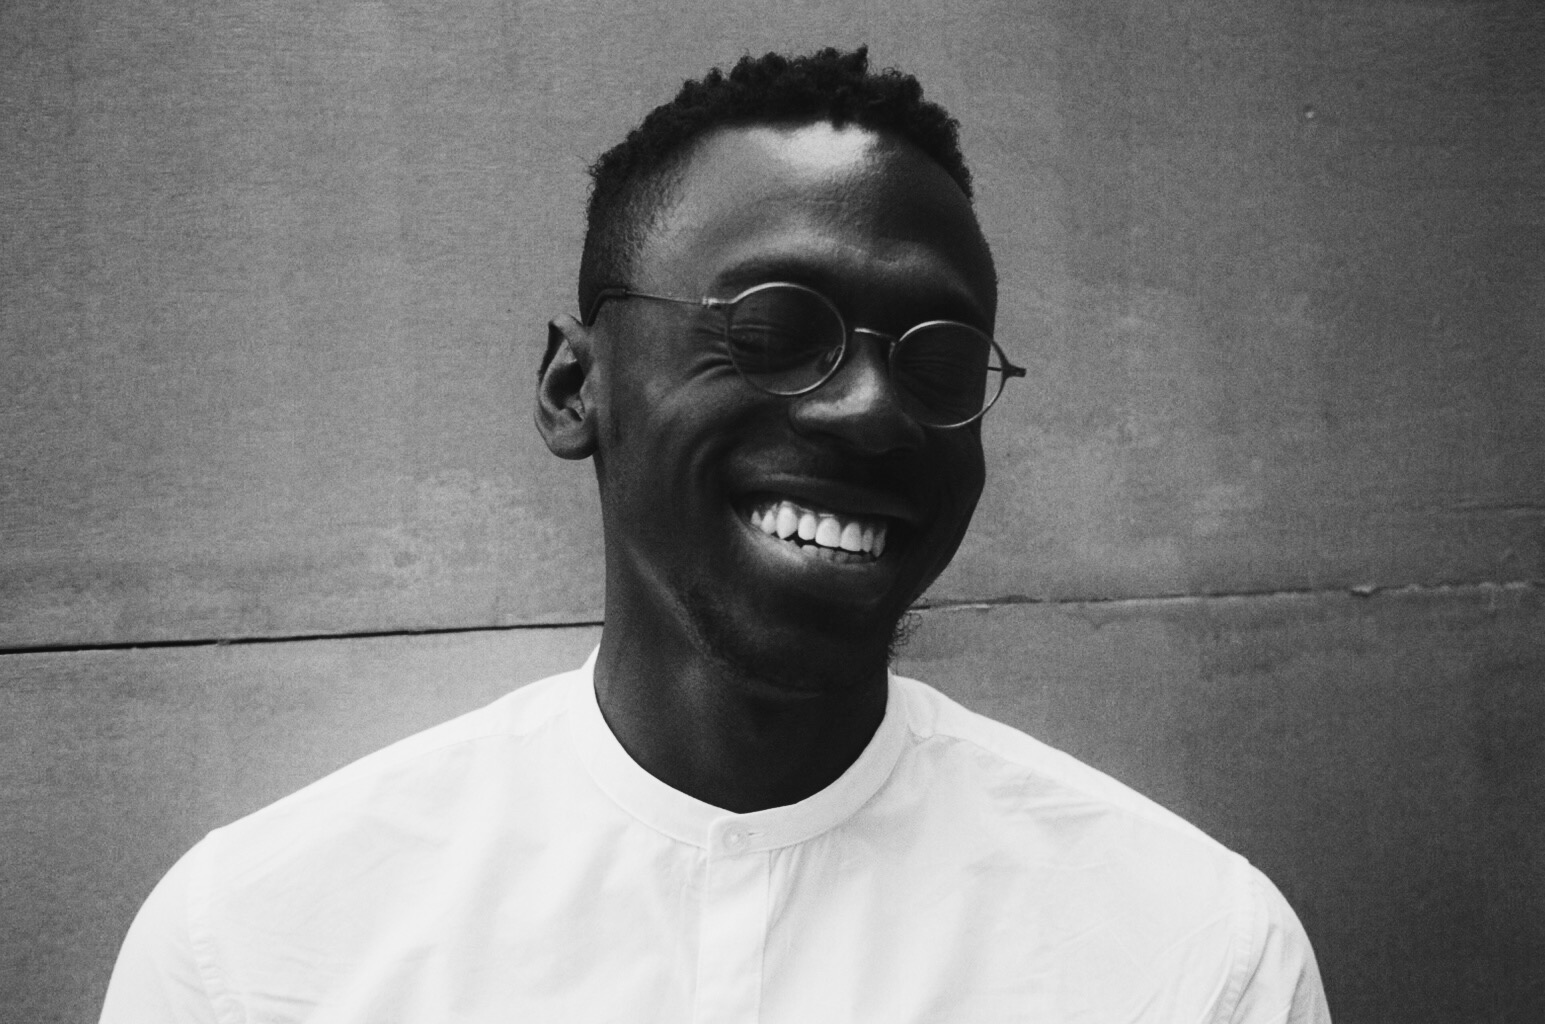 Black and white photo of Axel Kacoutié who wears glasses and is smiling with his eyes closed